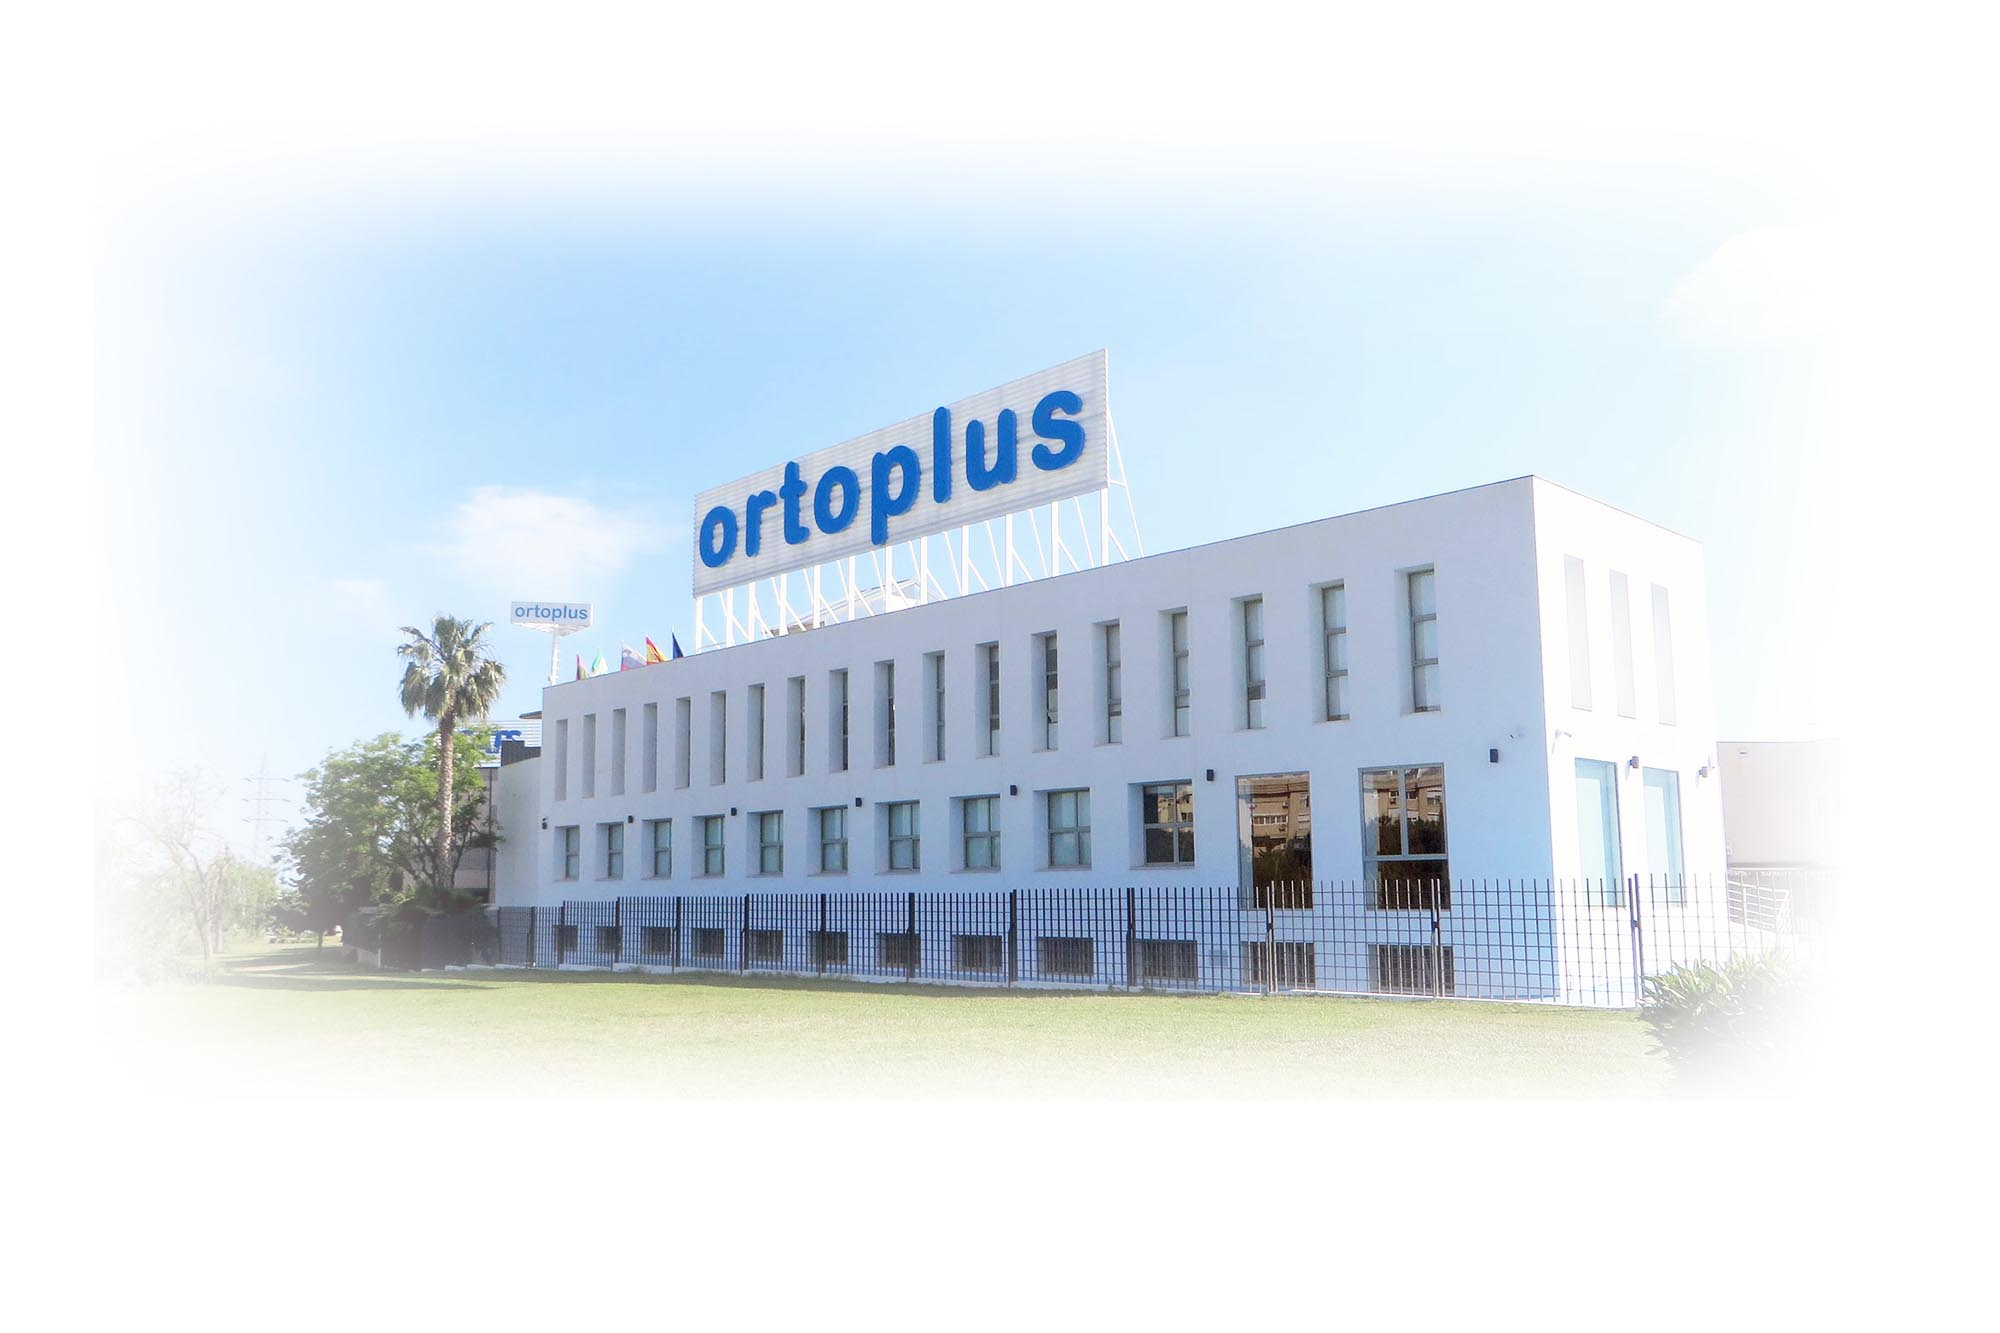 Orthodontic Ortoplus Laboratory